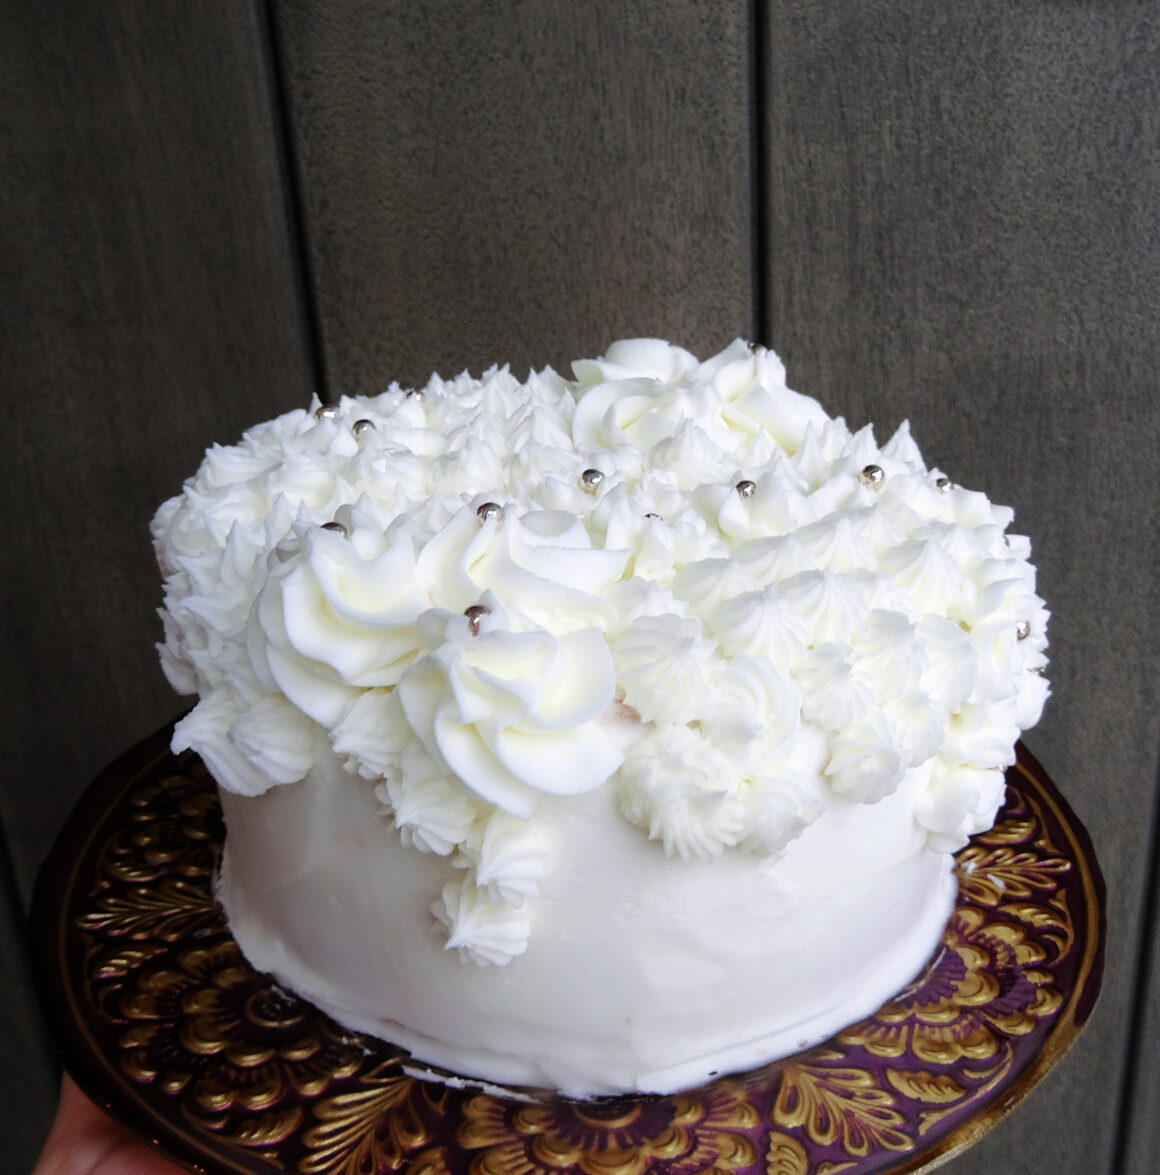 Champagne cake on a cake stand by Champagne and Sugarplums